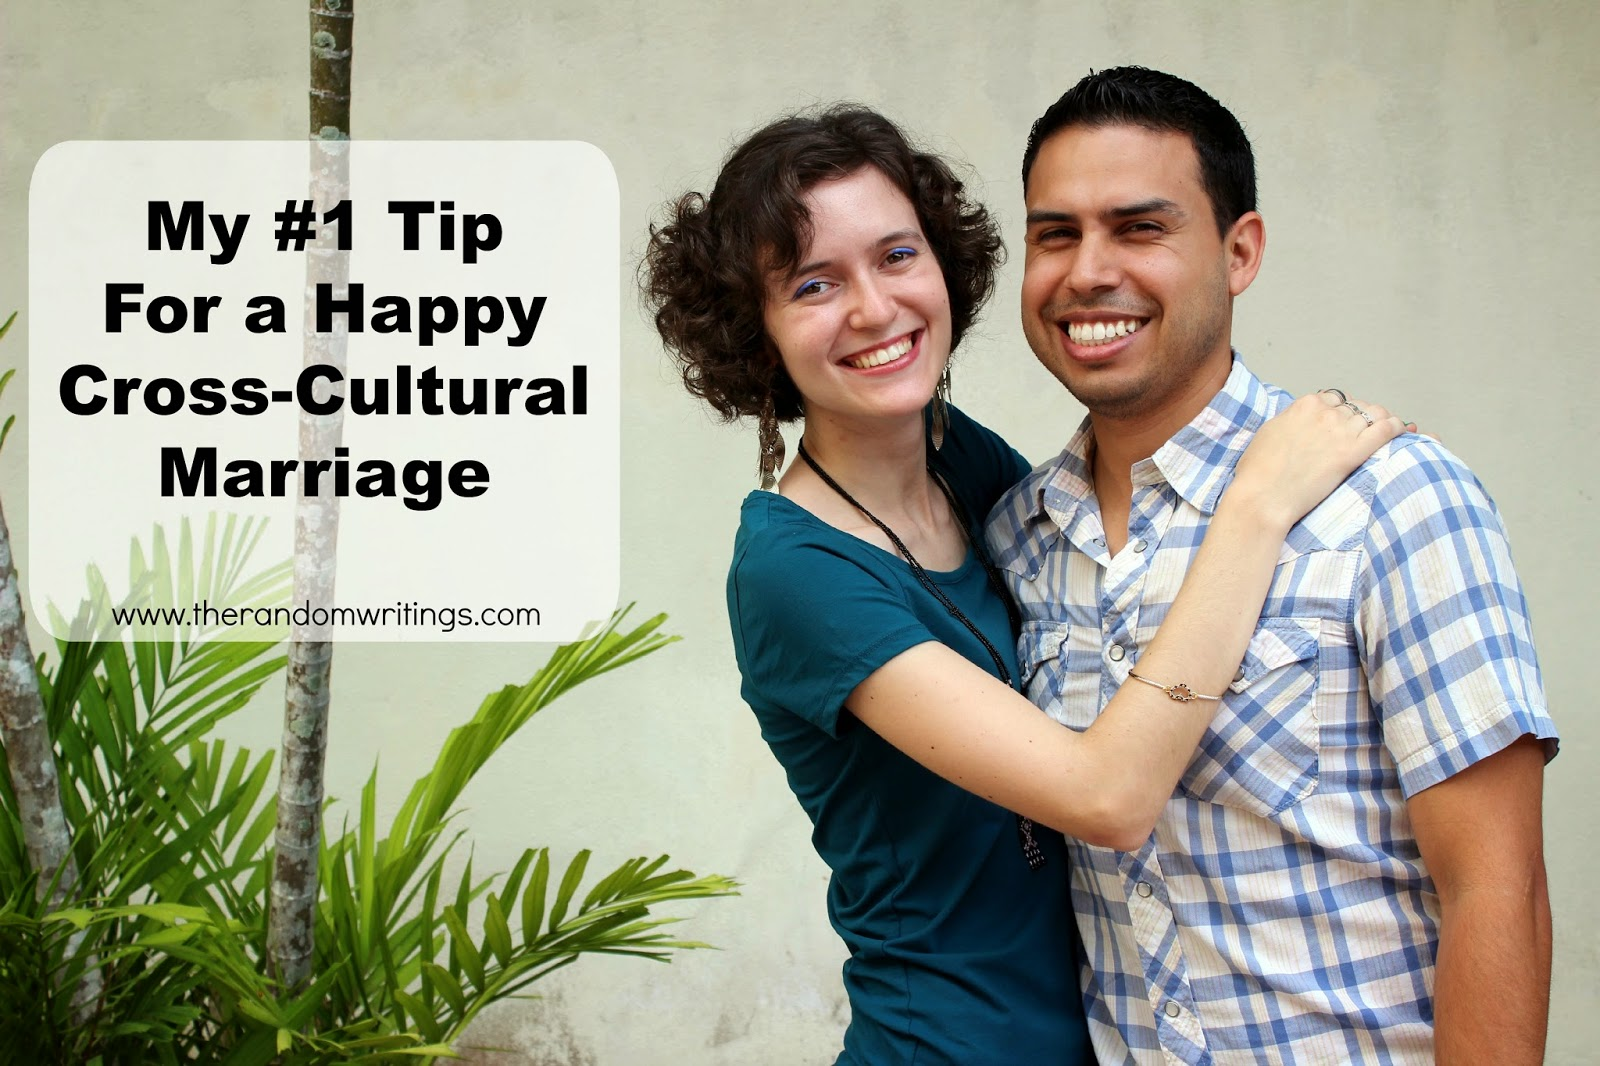 Dating between different cultures